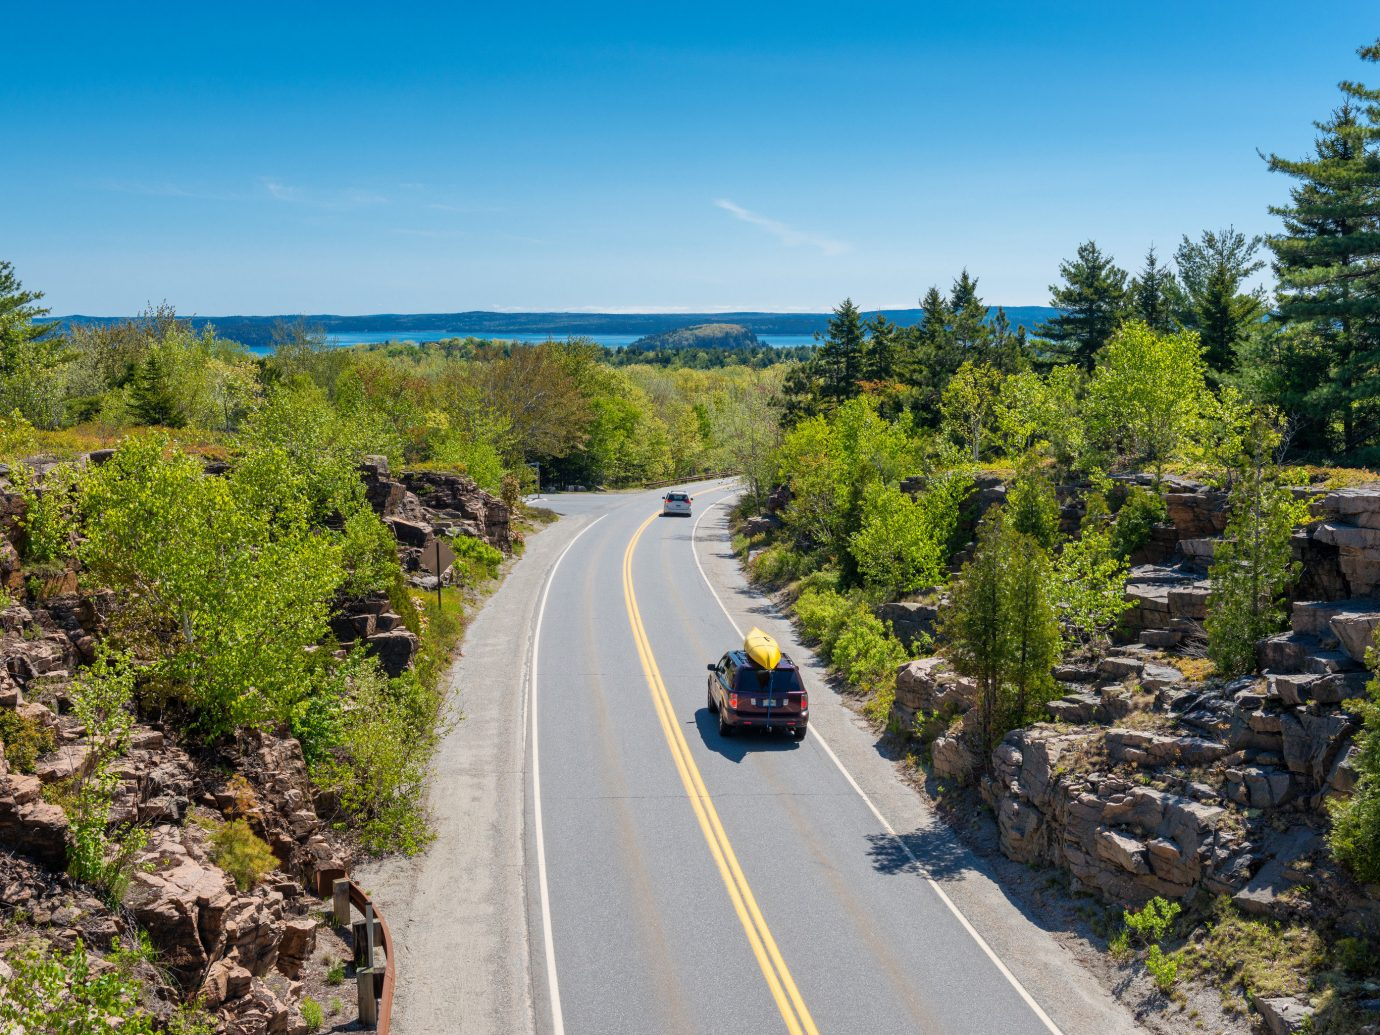 Family Travel National Parks Outdoors + Adventure Road Trips Trip Ideas tree outdoor sky way road scene highway mountain vacation infrastructure rural area landscape trail mountain pass traveling